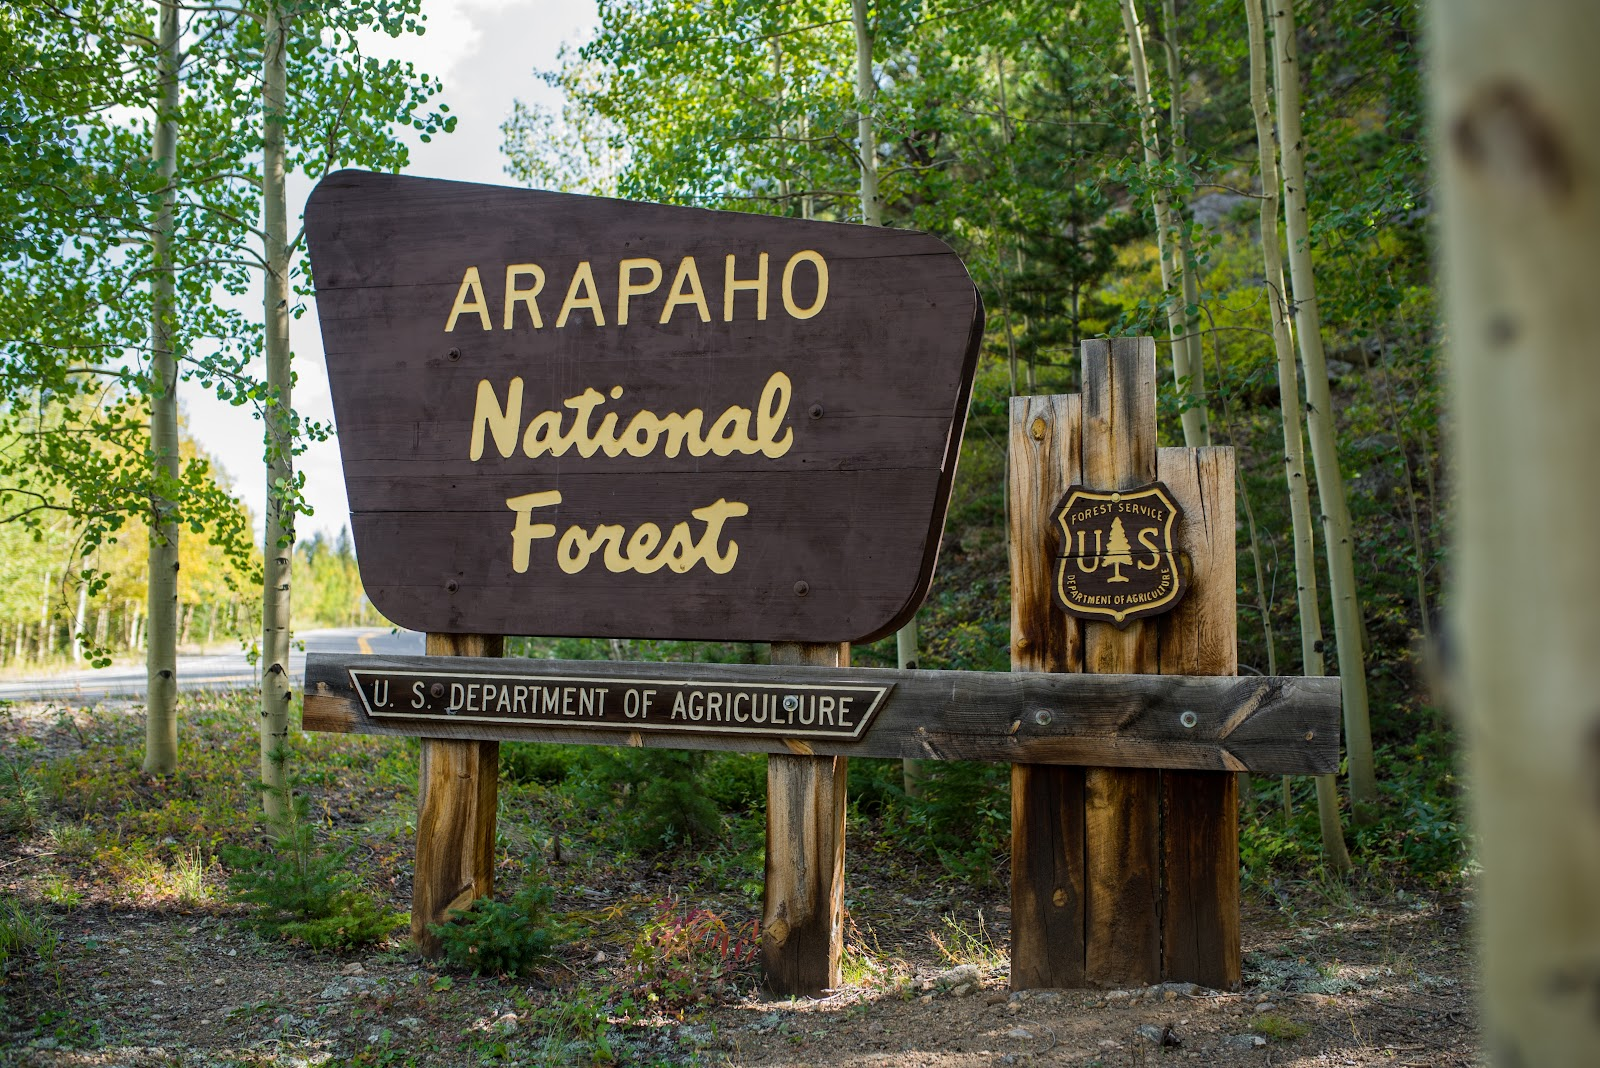 Arapaho National Forest sign on Hwy 103 while riding by bike to Mount Evans, Rocky Mountains